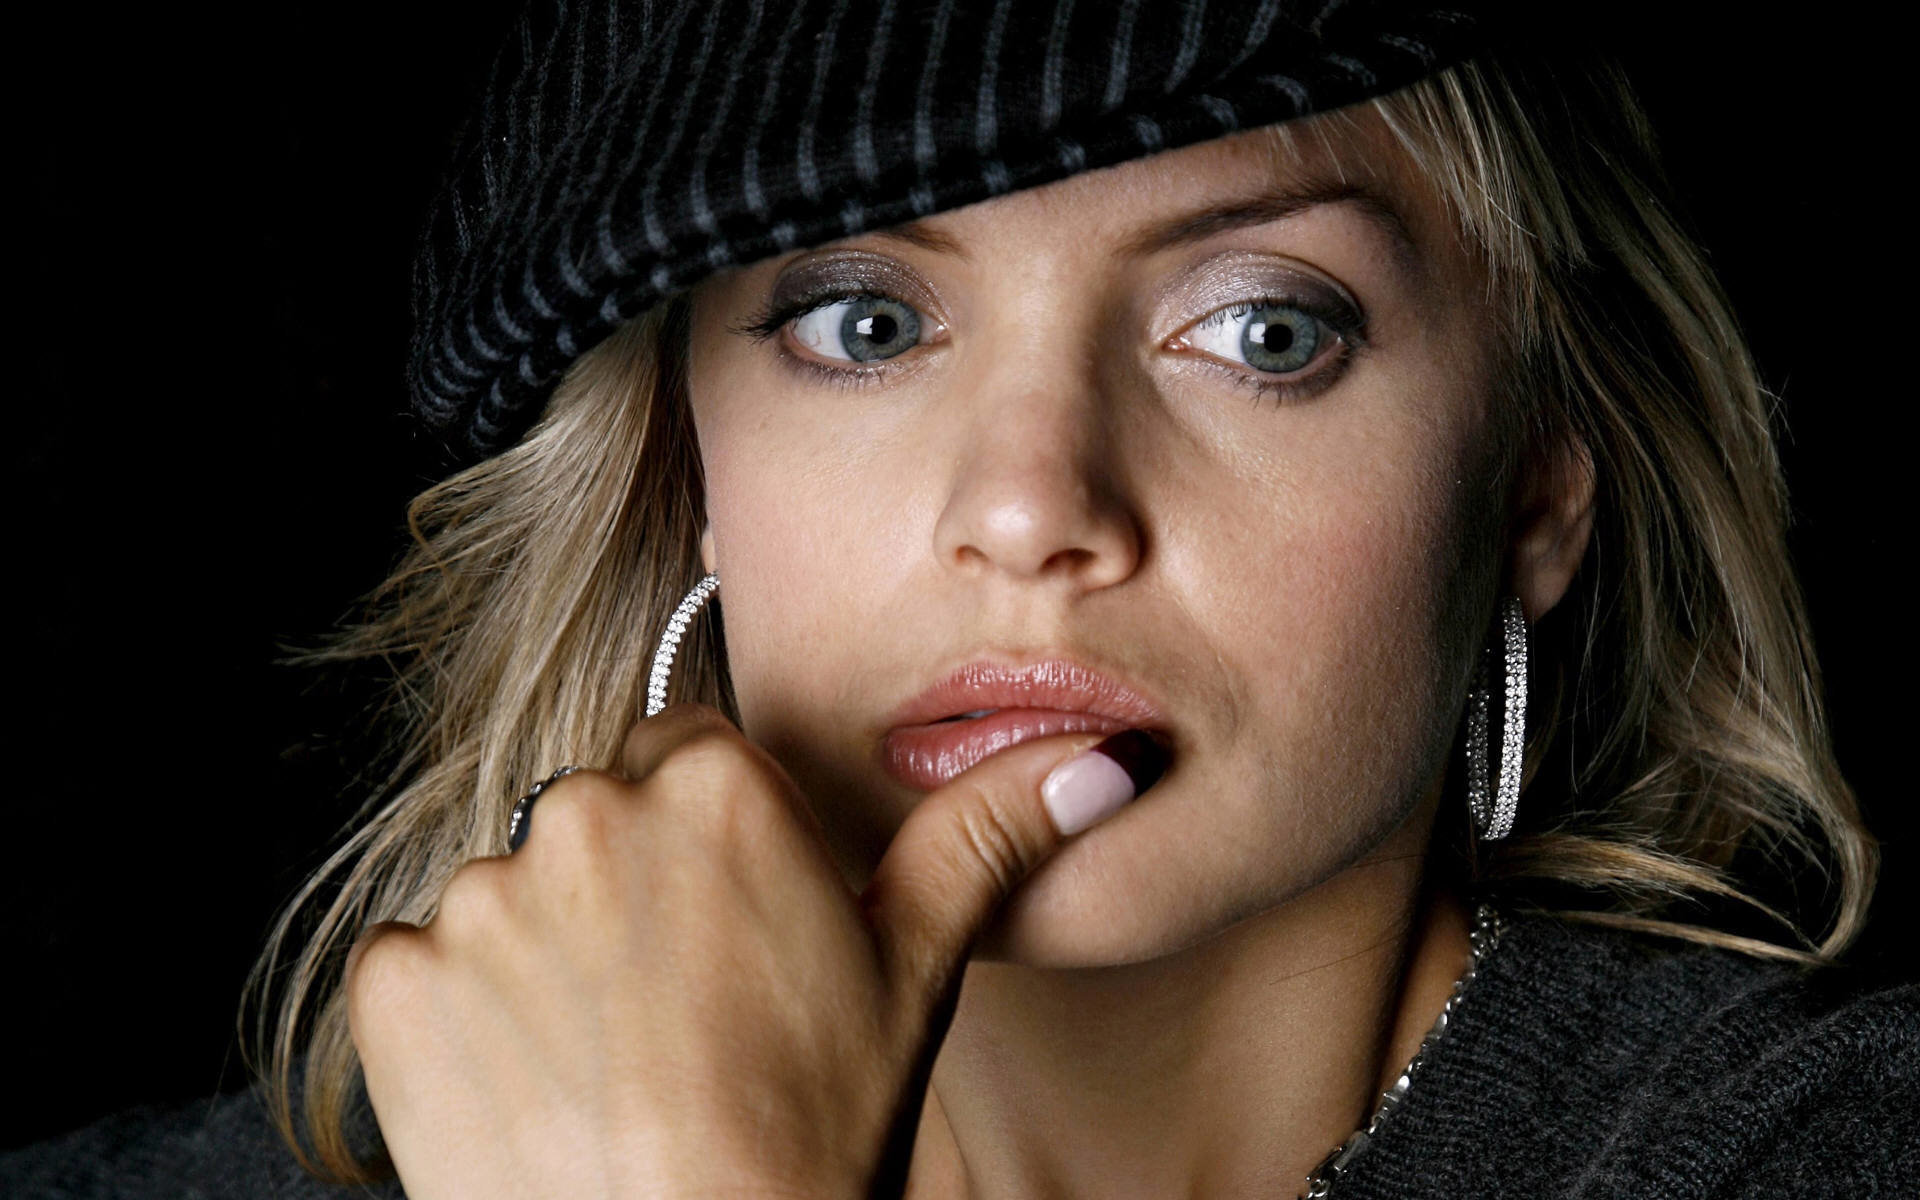 Free Mena Suvari high quality wallpaper ID:445568 for hd 1920x1200 desktop